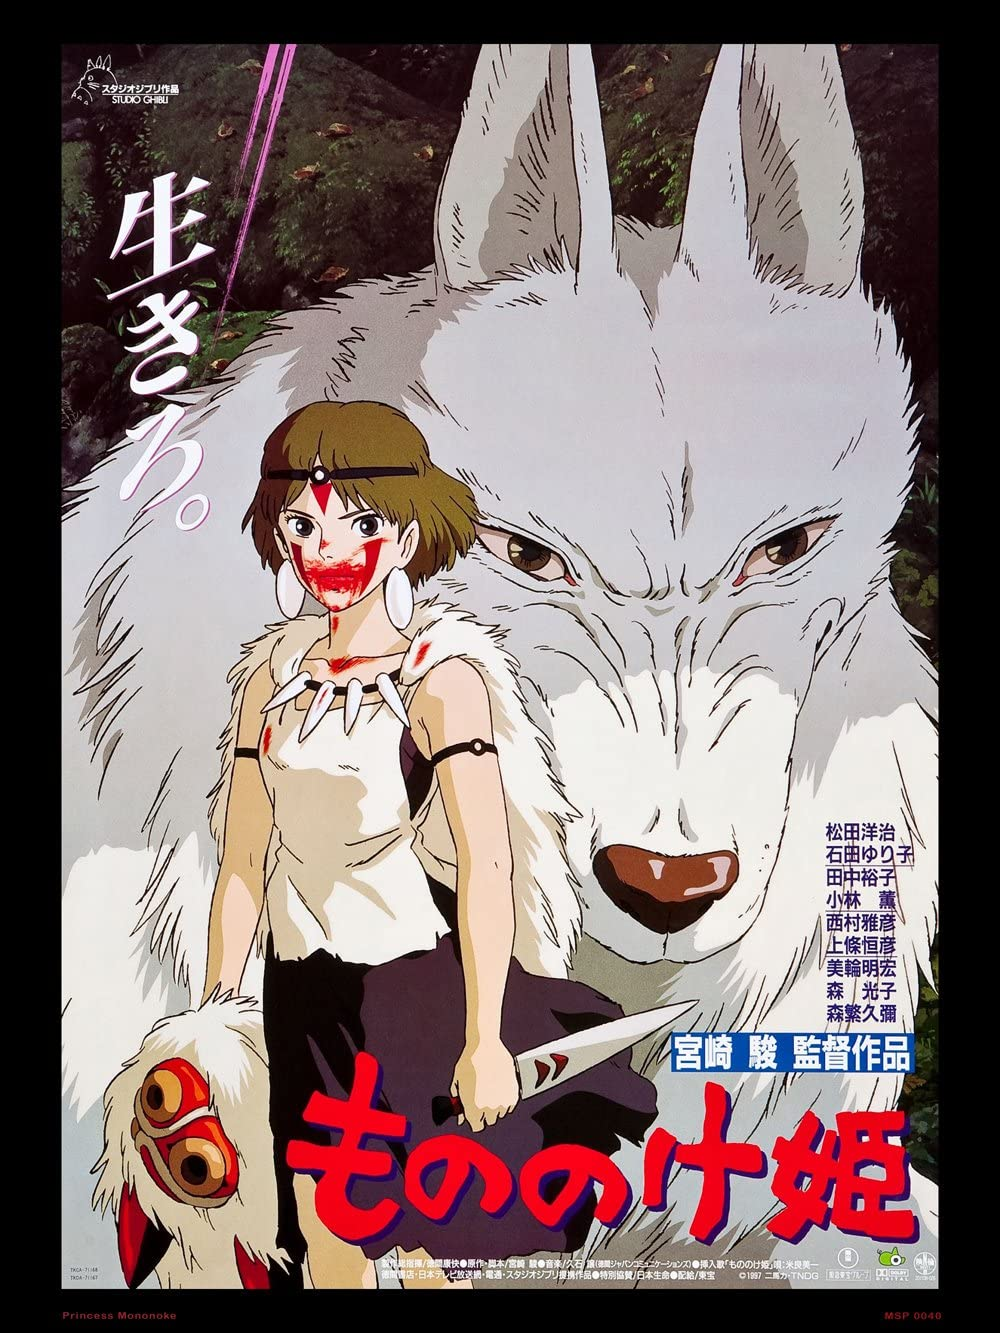 Princess Mononoke Studio Ghibli Movie Poster Print T238 A4 A3 A2 A1 A0|